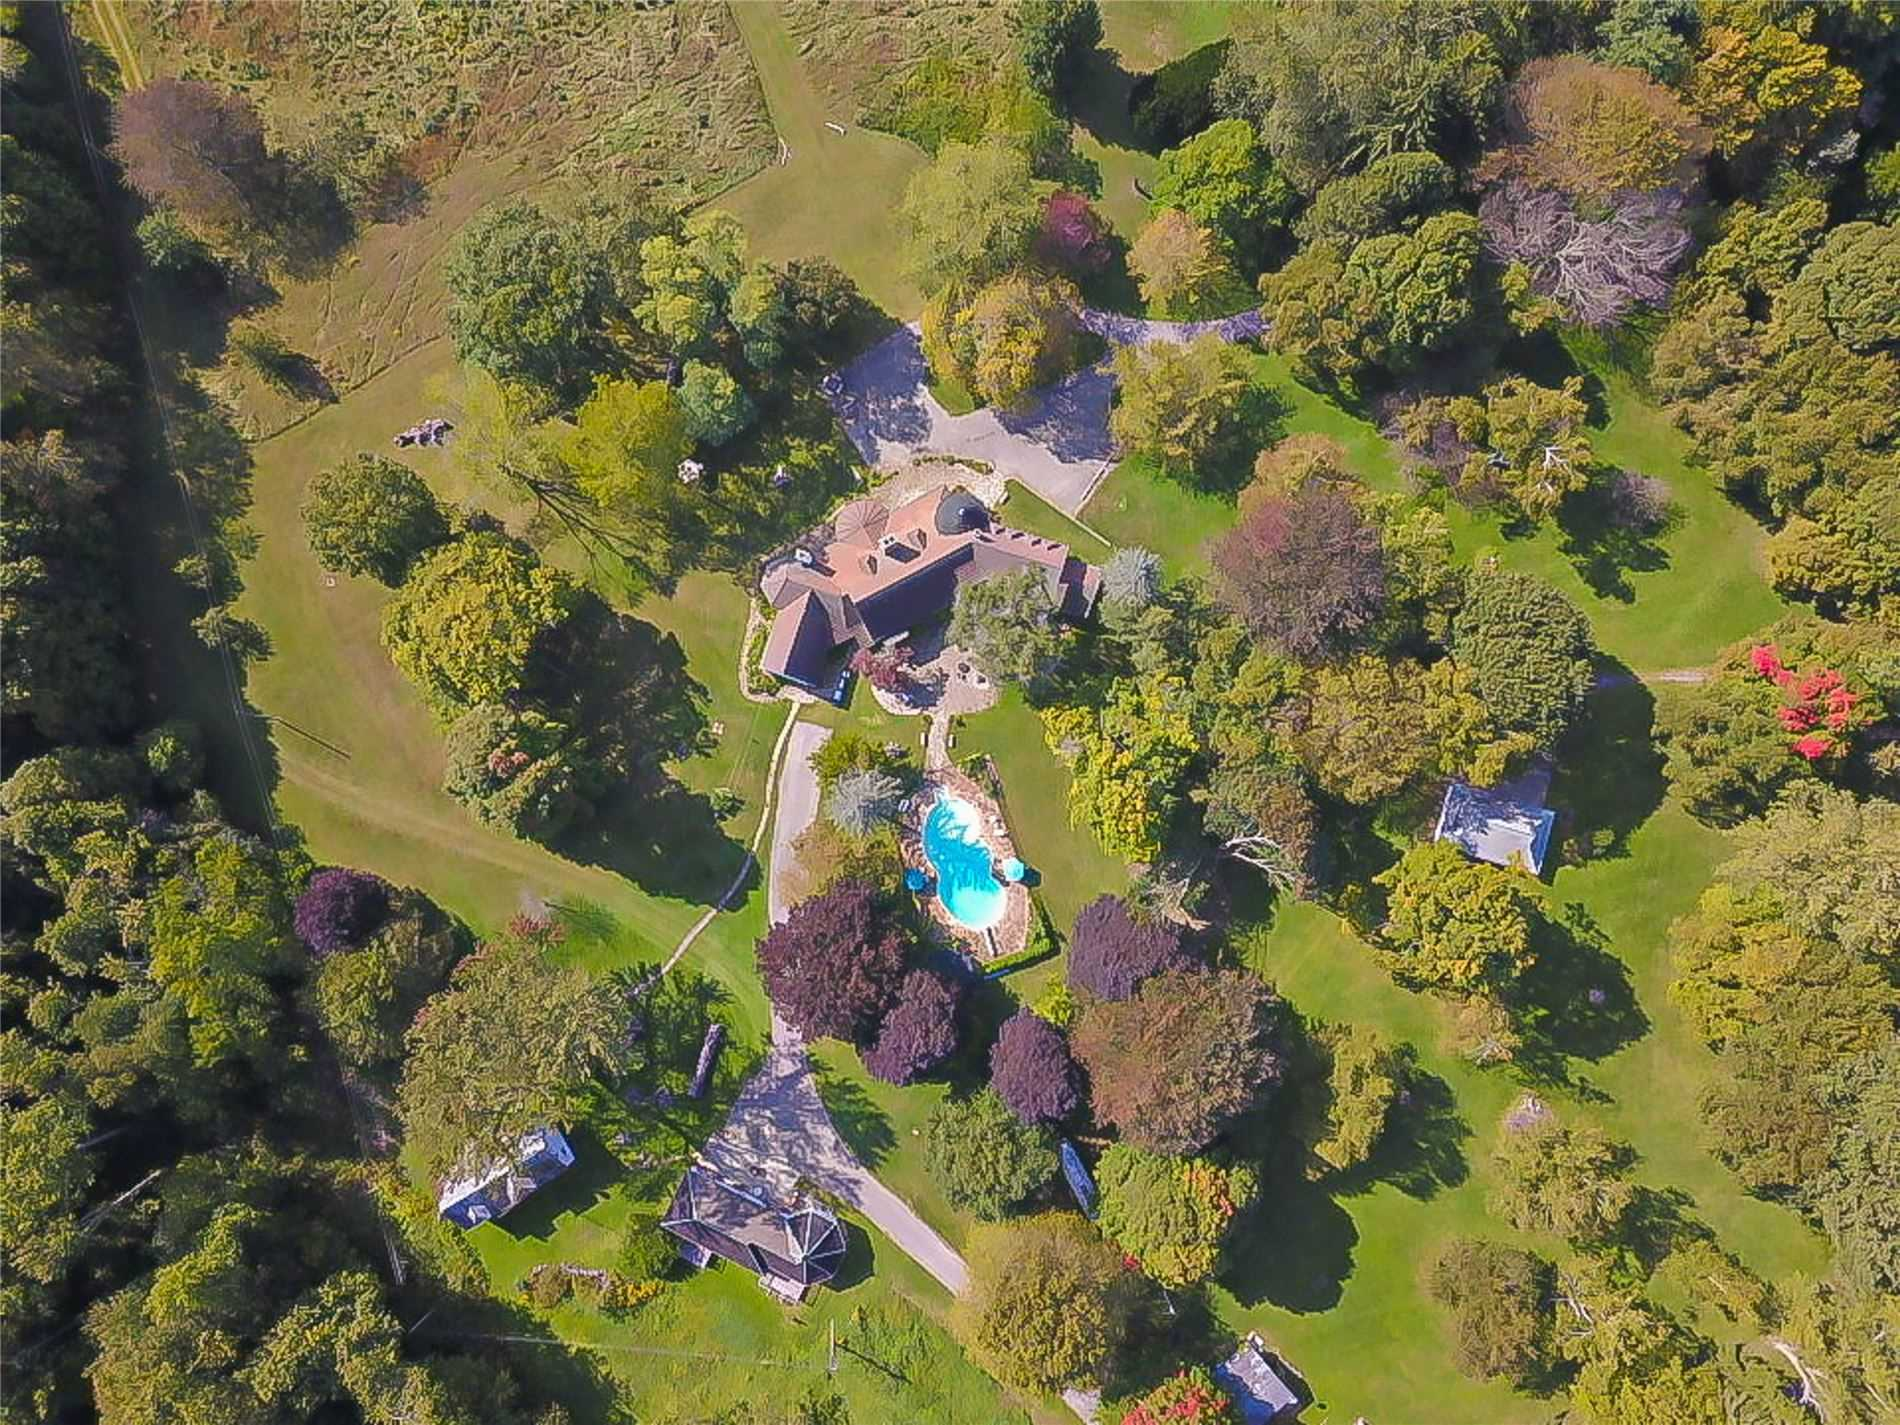 Introducing The Bayham Estates, An Exclusive 50 Acre Retreat Rising Up From Lake Erie's North Shore. This  Magnificent 7000 Sq. Ft Normandy Chateau Boasts 4 Bdrms, 5 Baths, Breathtaking Cathedral Ceilings, Hand  Carved Wood Panels Imported From France, Stain Glass Windows, 4 Stone Fire Places, Oak Floors, Salt Water Pool, Tennis Court, 10 Min Walk To  Beach.  5 Outbuildings(A Few Need Tlc.) Approx. 1.6 Km From Main Road. A Hidden Gem!